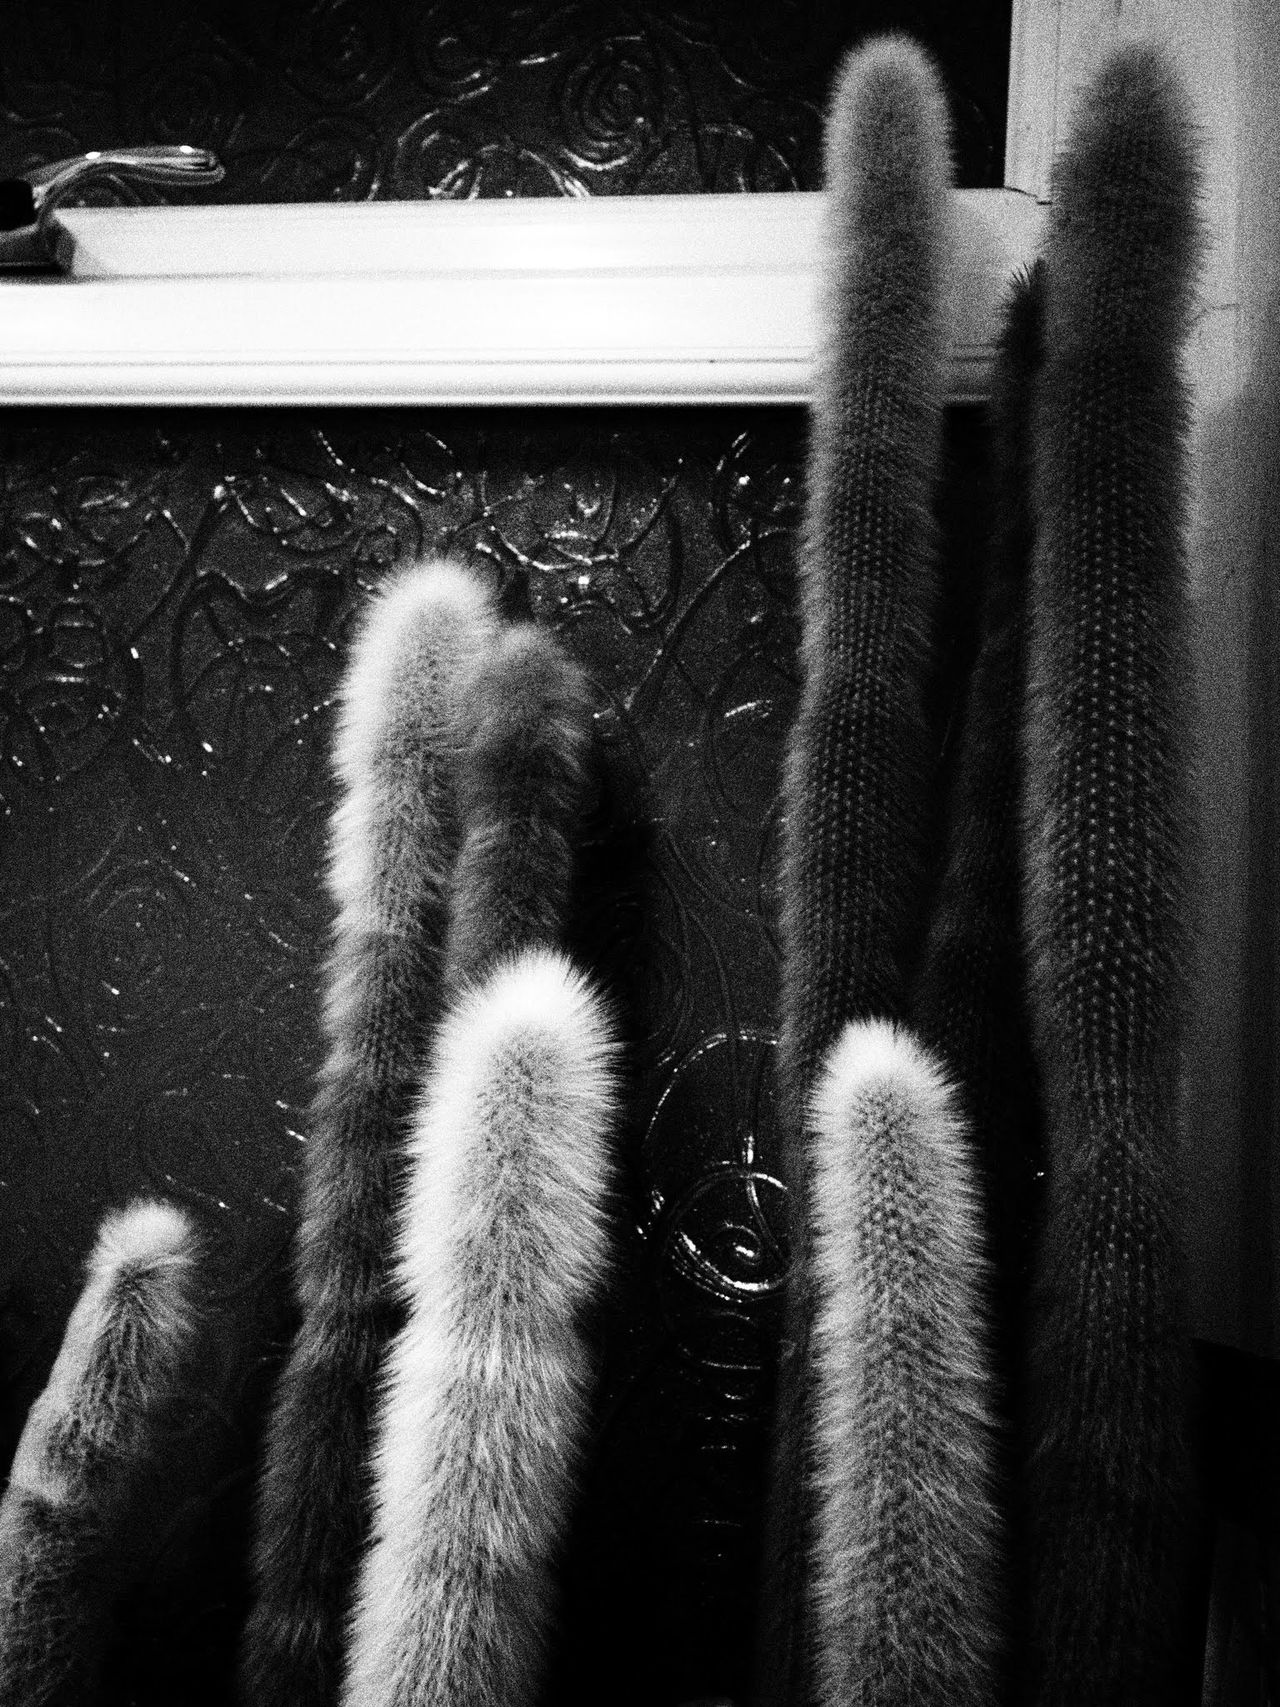 Indoors  No People Cuctases Window Plants Black And White EyeEmNewHere BYOPaper!